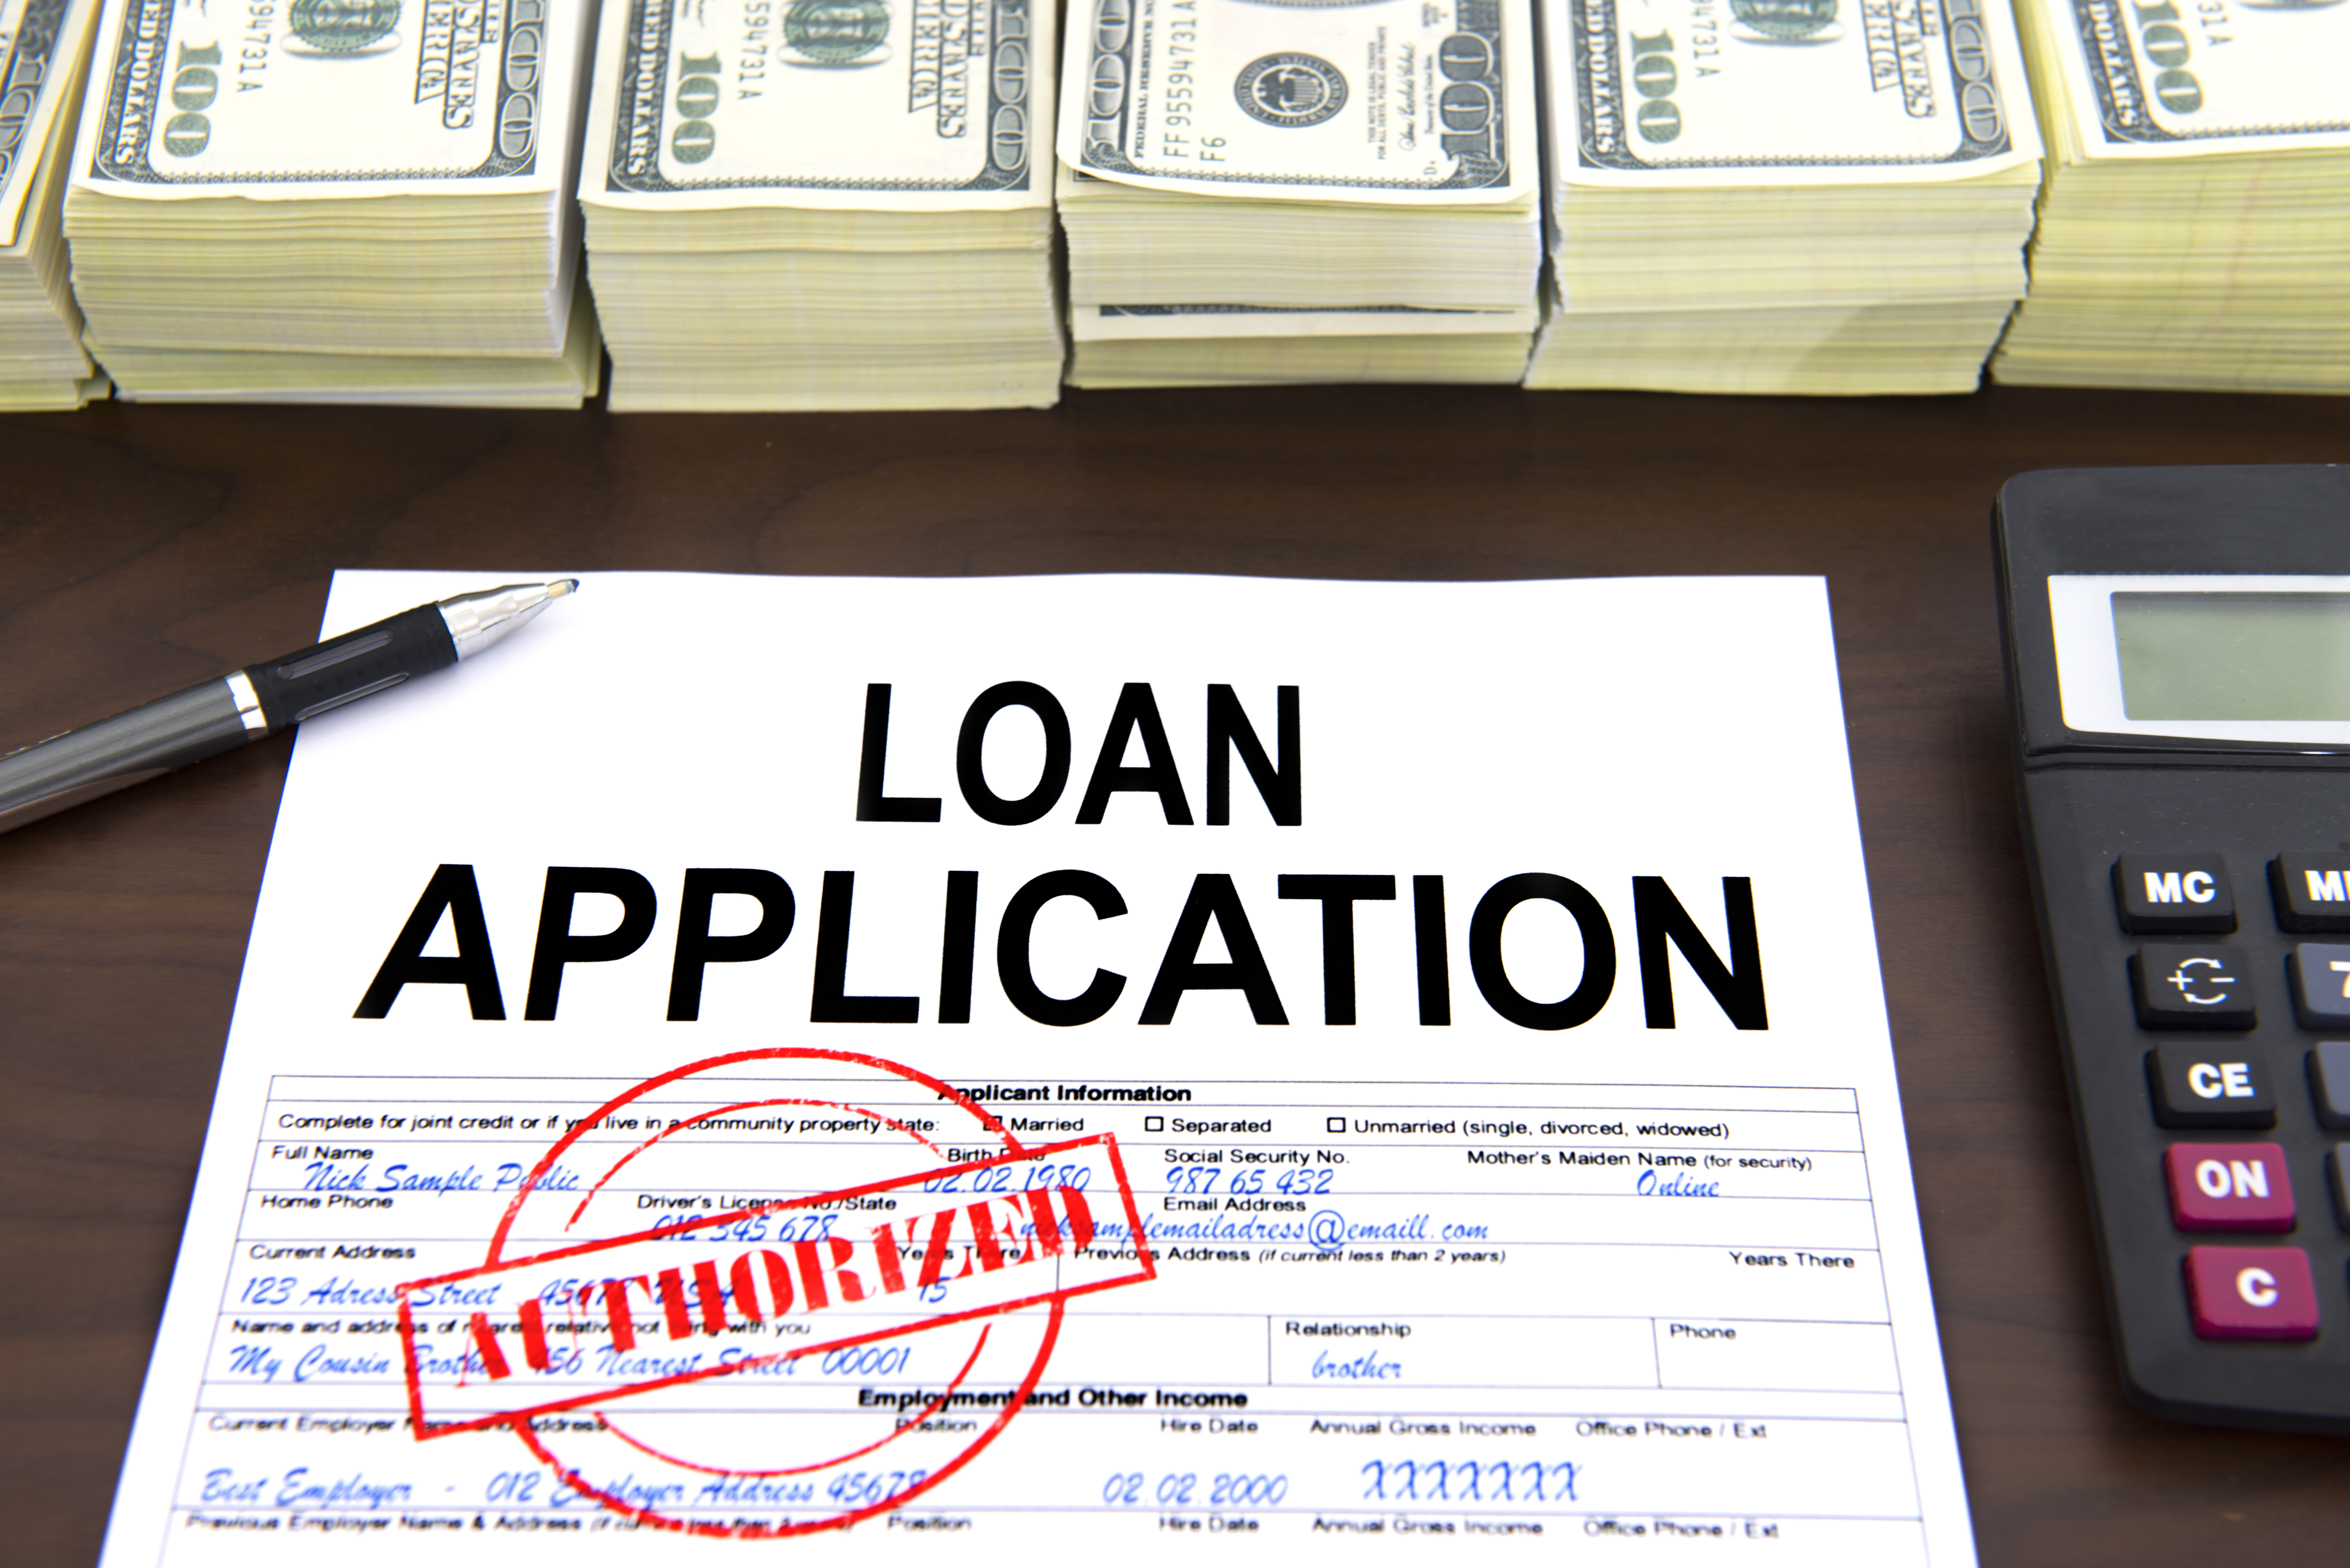 Approved loan application form and dollar bills